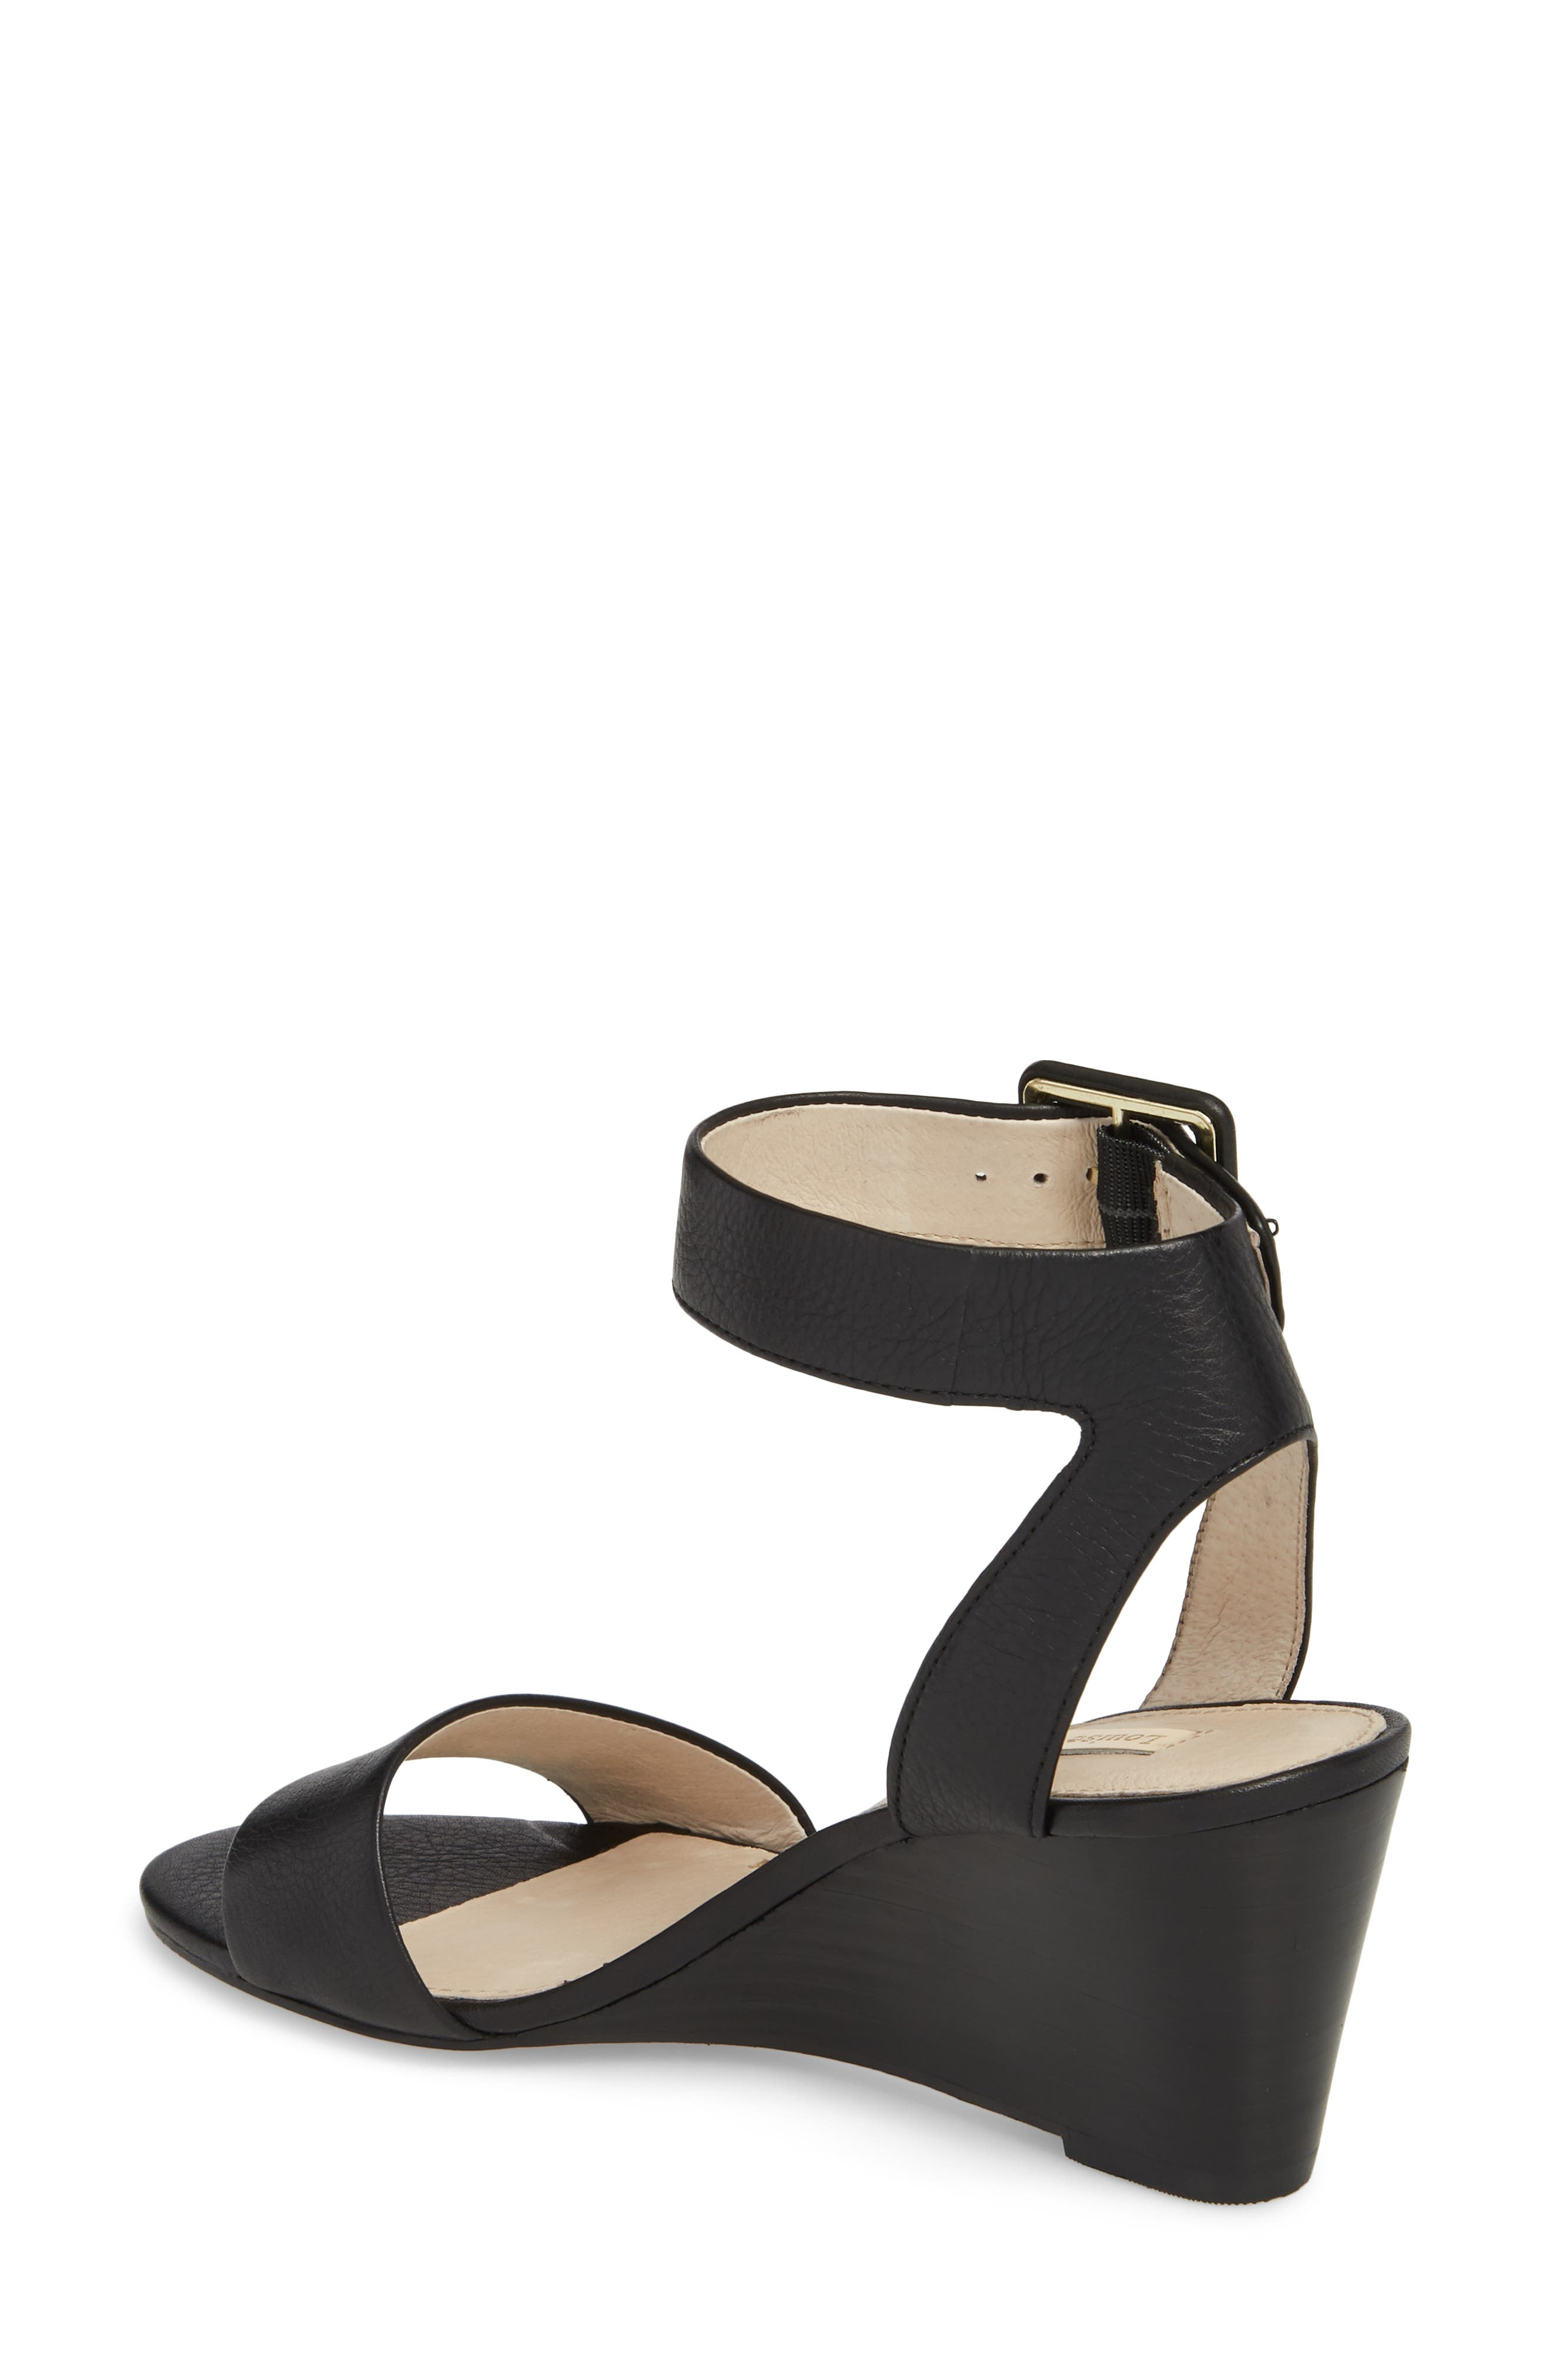 LOUISE ET CIE, Punya Wedge Sandal, Alternate thumbnail 2, color, BLACK LEATHER